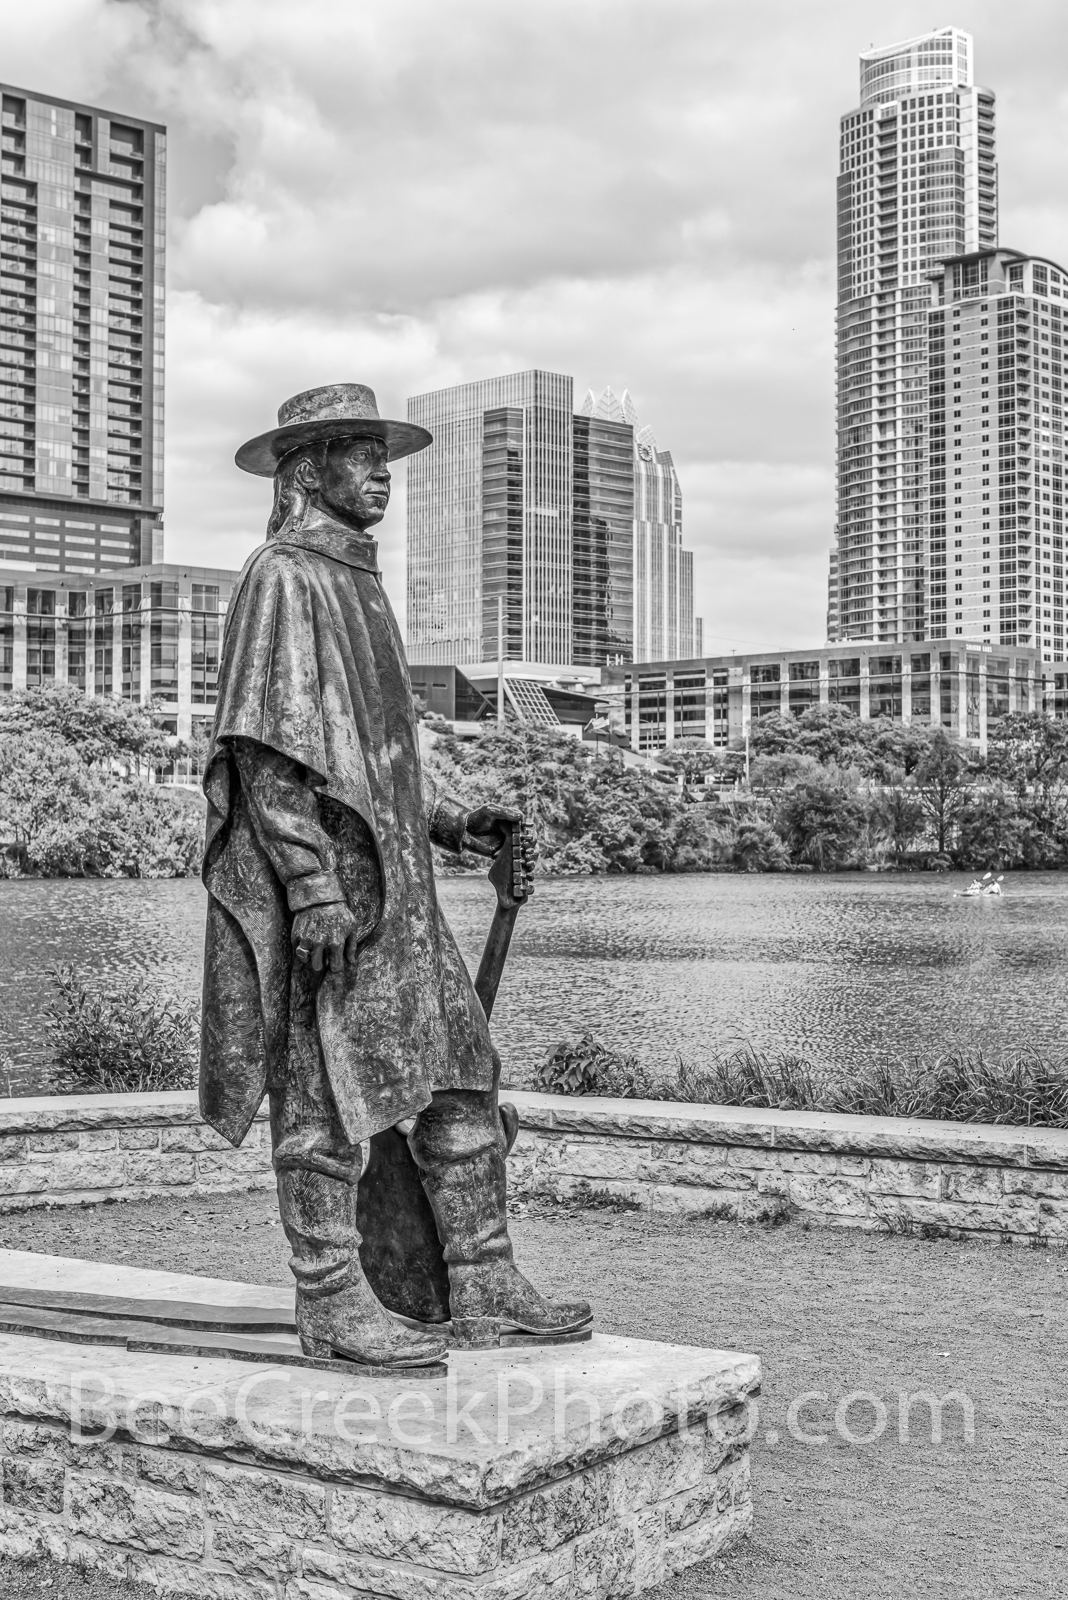 austin, stevie vaughan statue, bw, black and white, bronze, independent, jingle, high rise, skyscraper, lady bird lake, butler hike and bike trail, blues, guitar, , photo